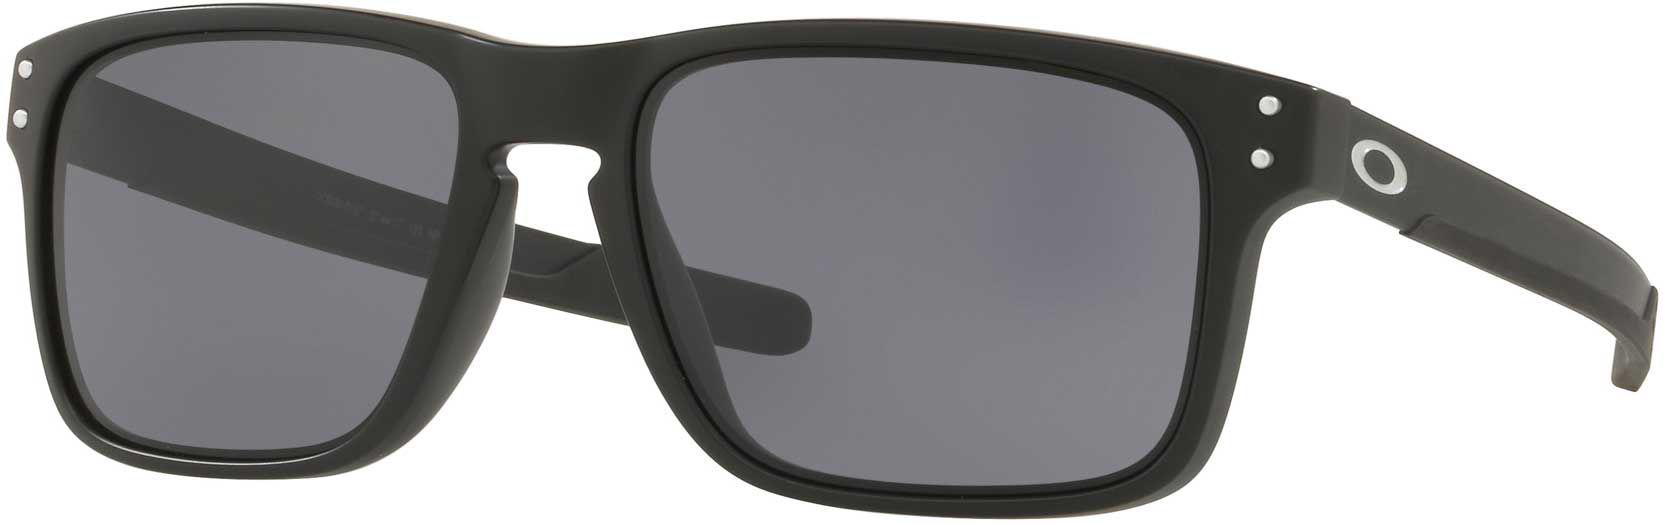 1c0ff325e4 Lyst - Oakley Holbrook Mix (asia Fit) Sunglasses in Black for Men ...